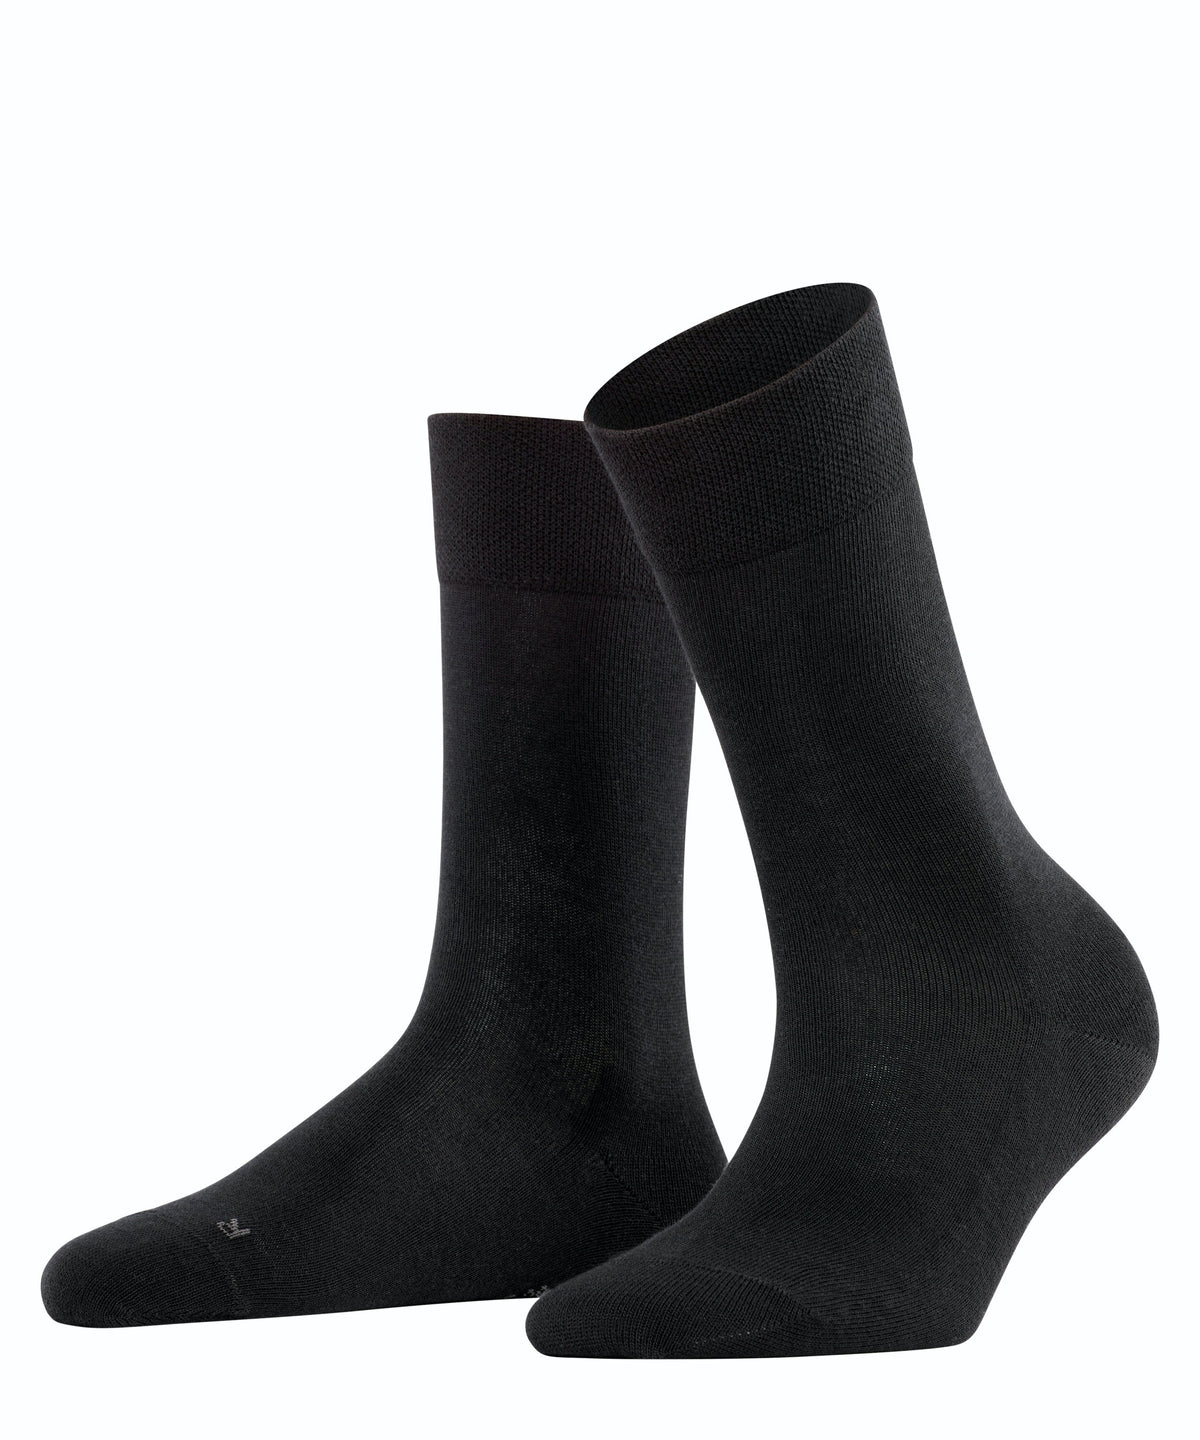 FALKE Sensitive London Women Socks - HANRO